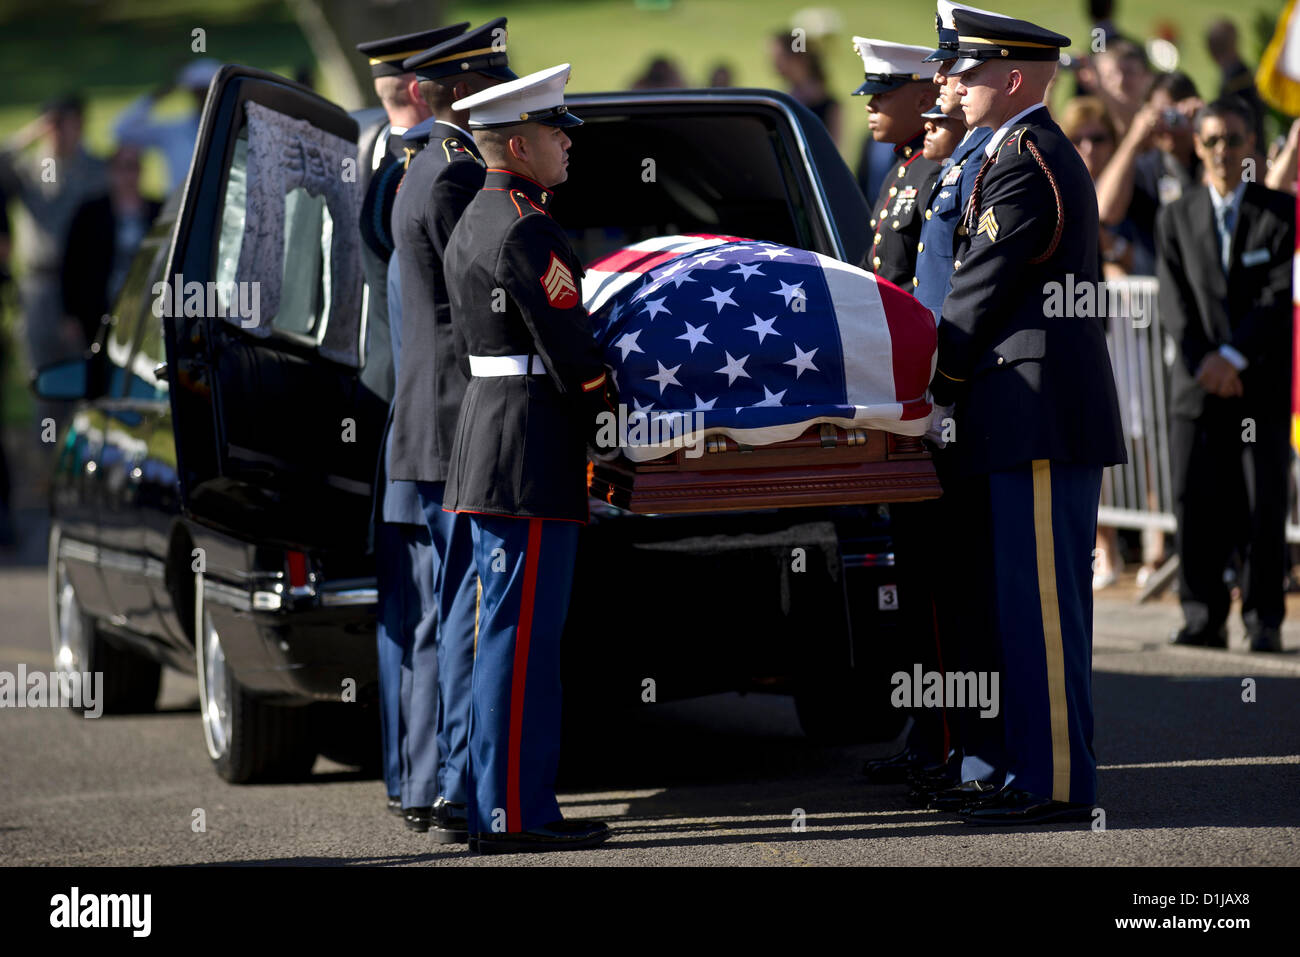 Senator Daniel Inouye's flag-draped casket is removed from hearse near the steps of the National Memorial Cemetery - Stock Image